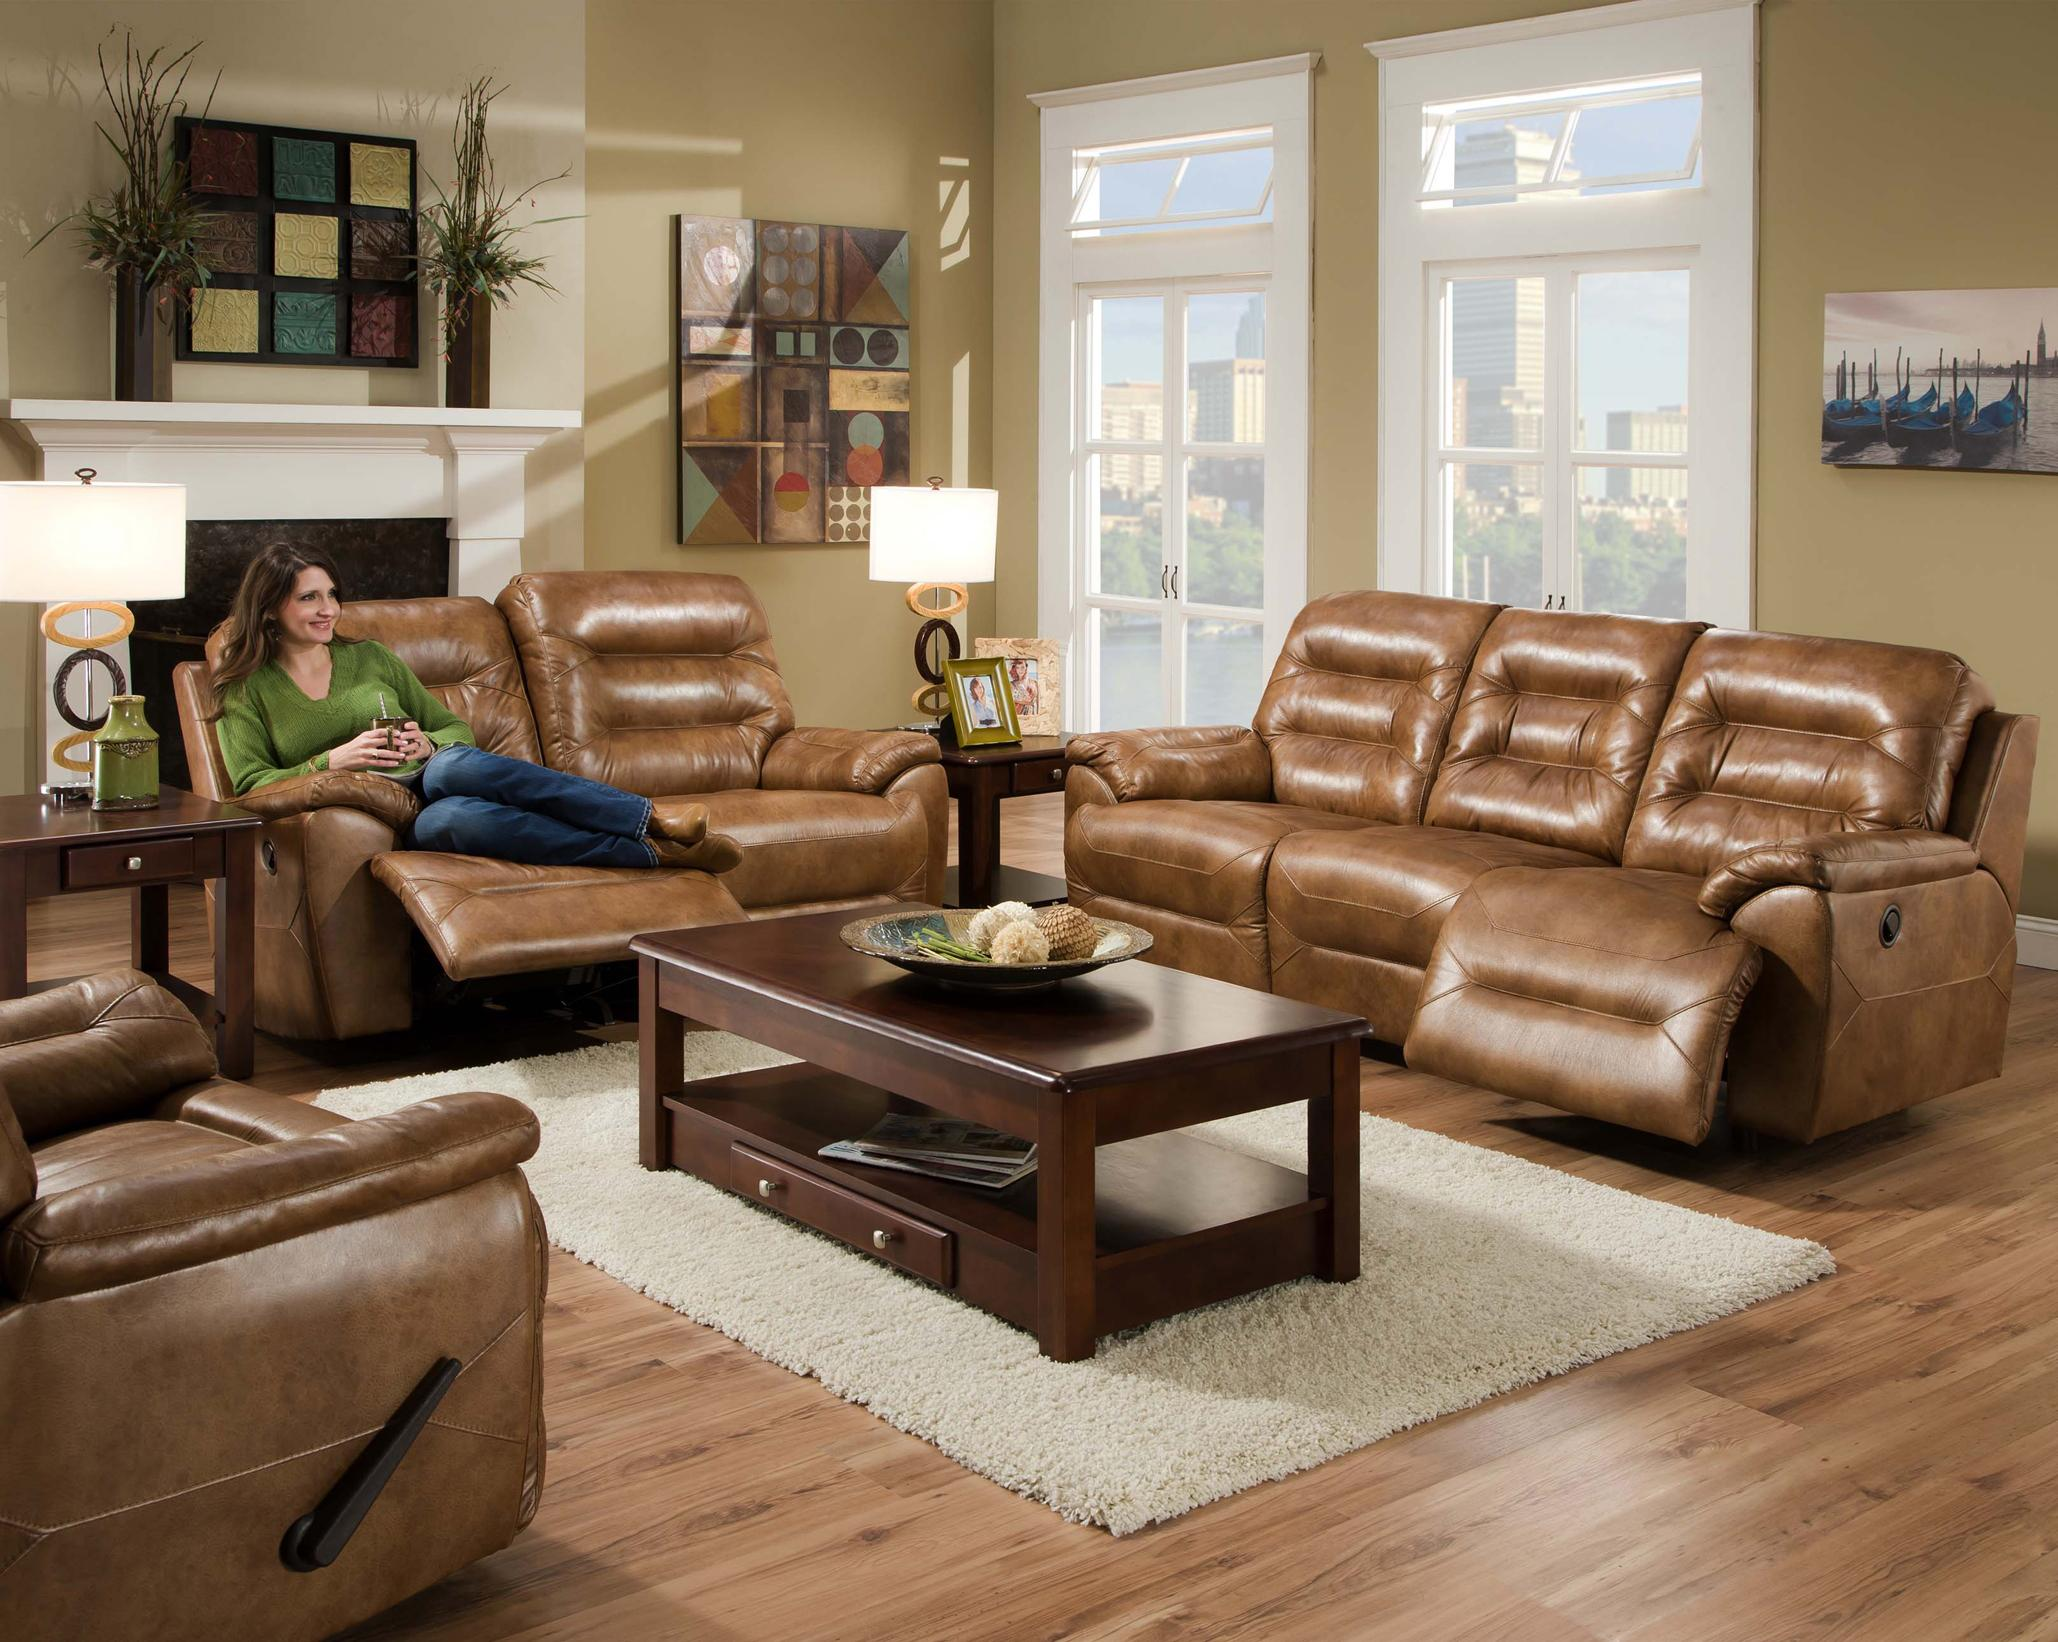 Franklin Freedom Two Seat Rocking Reclining Loveseat